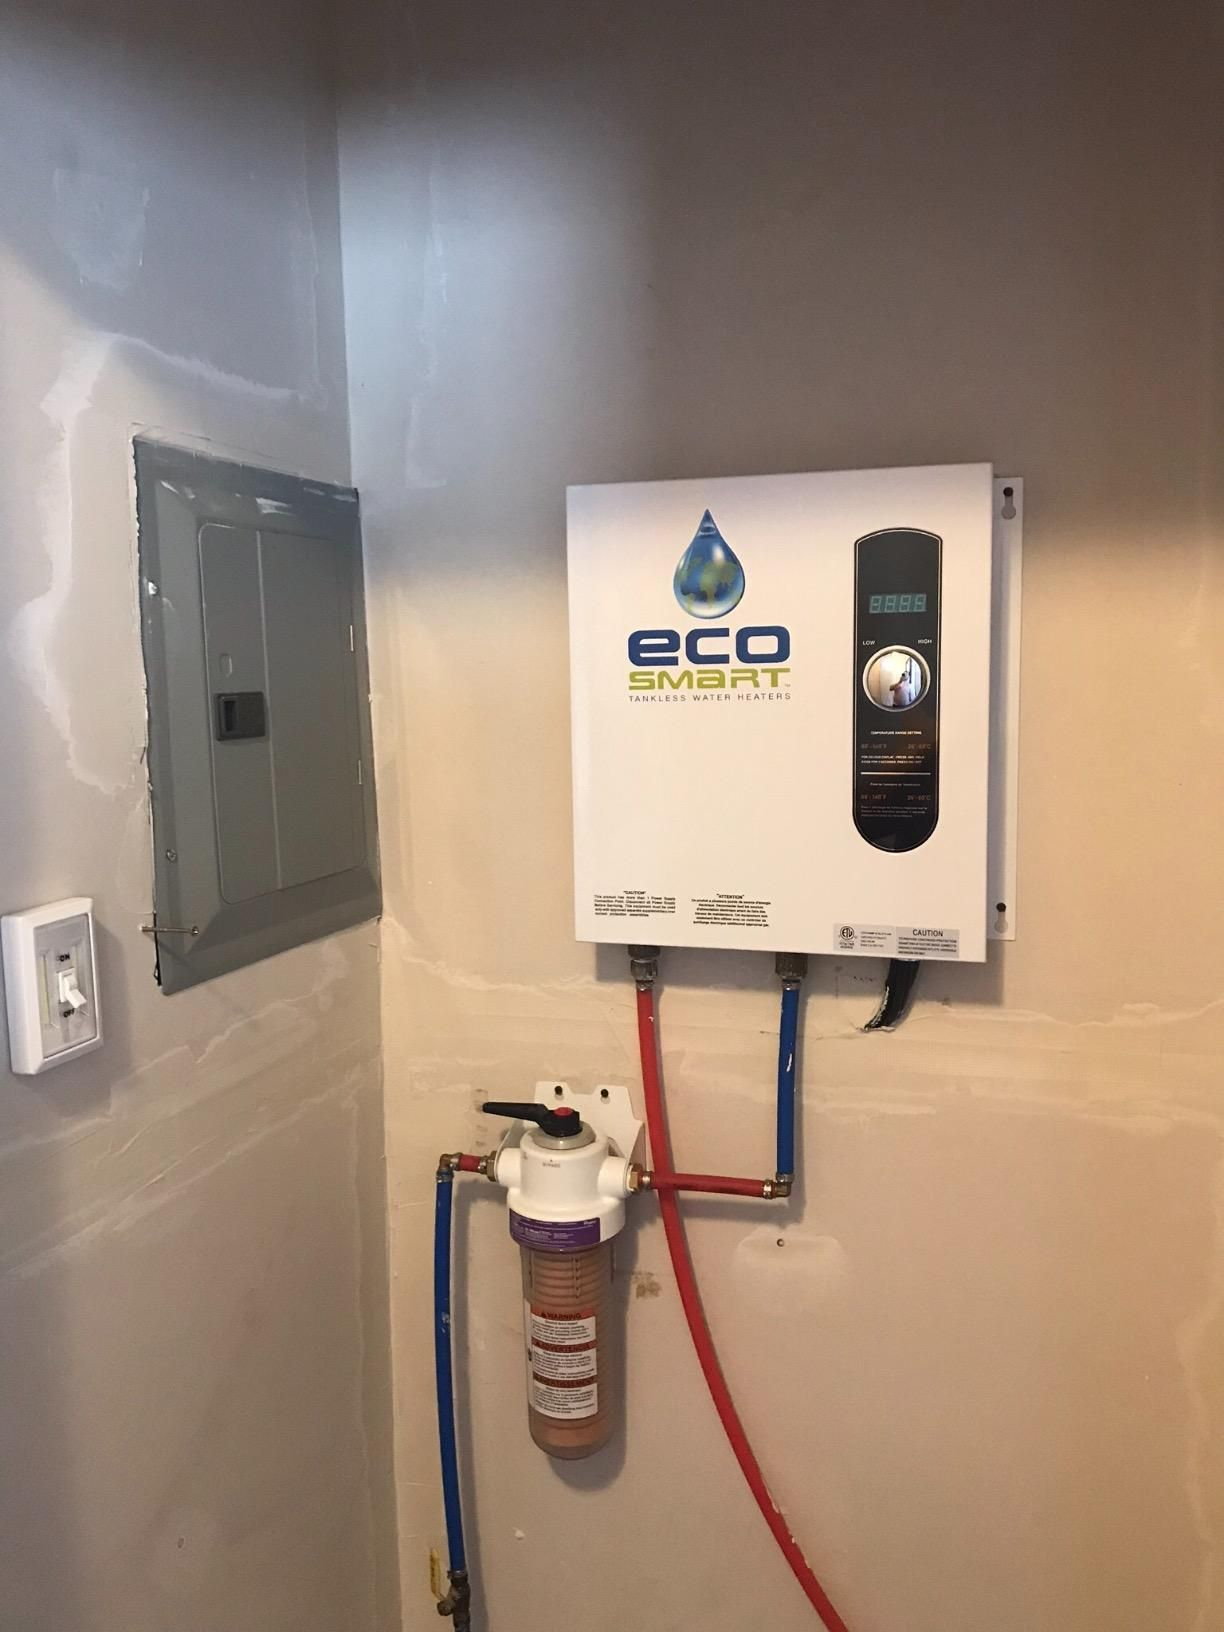 hight resolution of ecosmart tankless water heater wiring diagram save money ecosmart tankless water heaters only turn